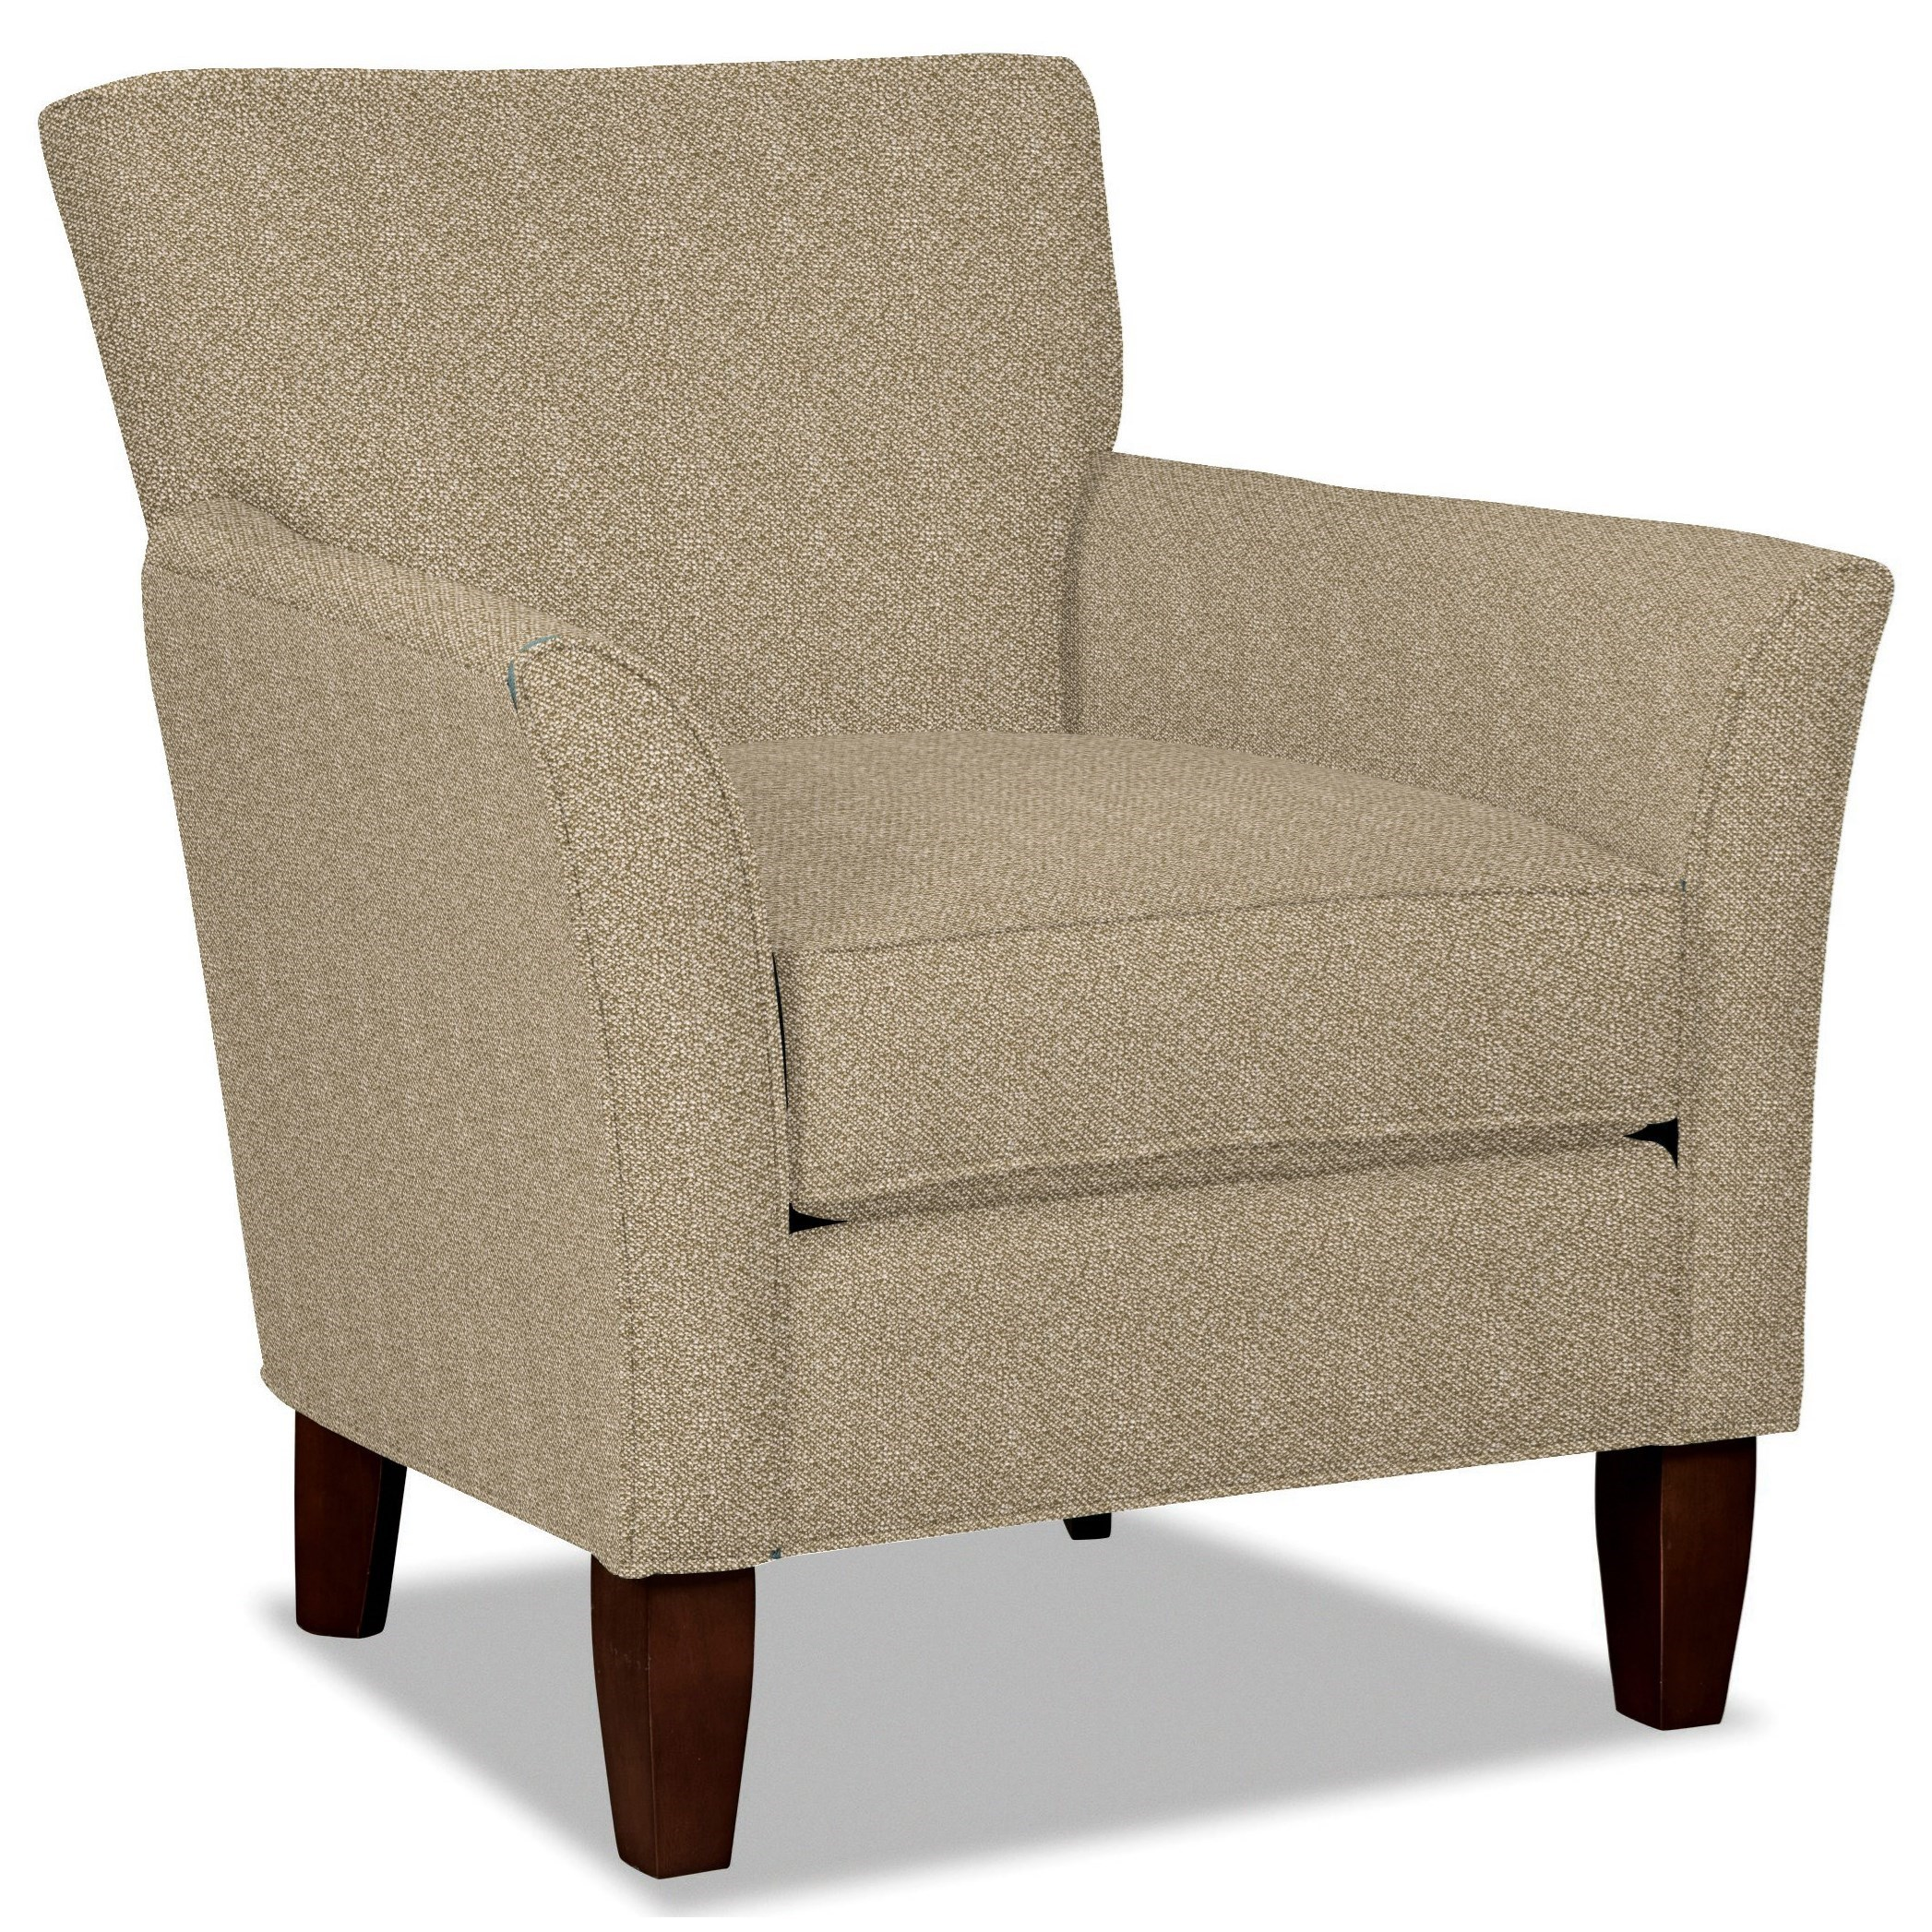 Craftmaster 060110 Accent Chair - Item Number: 060110-HAZE-31